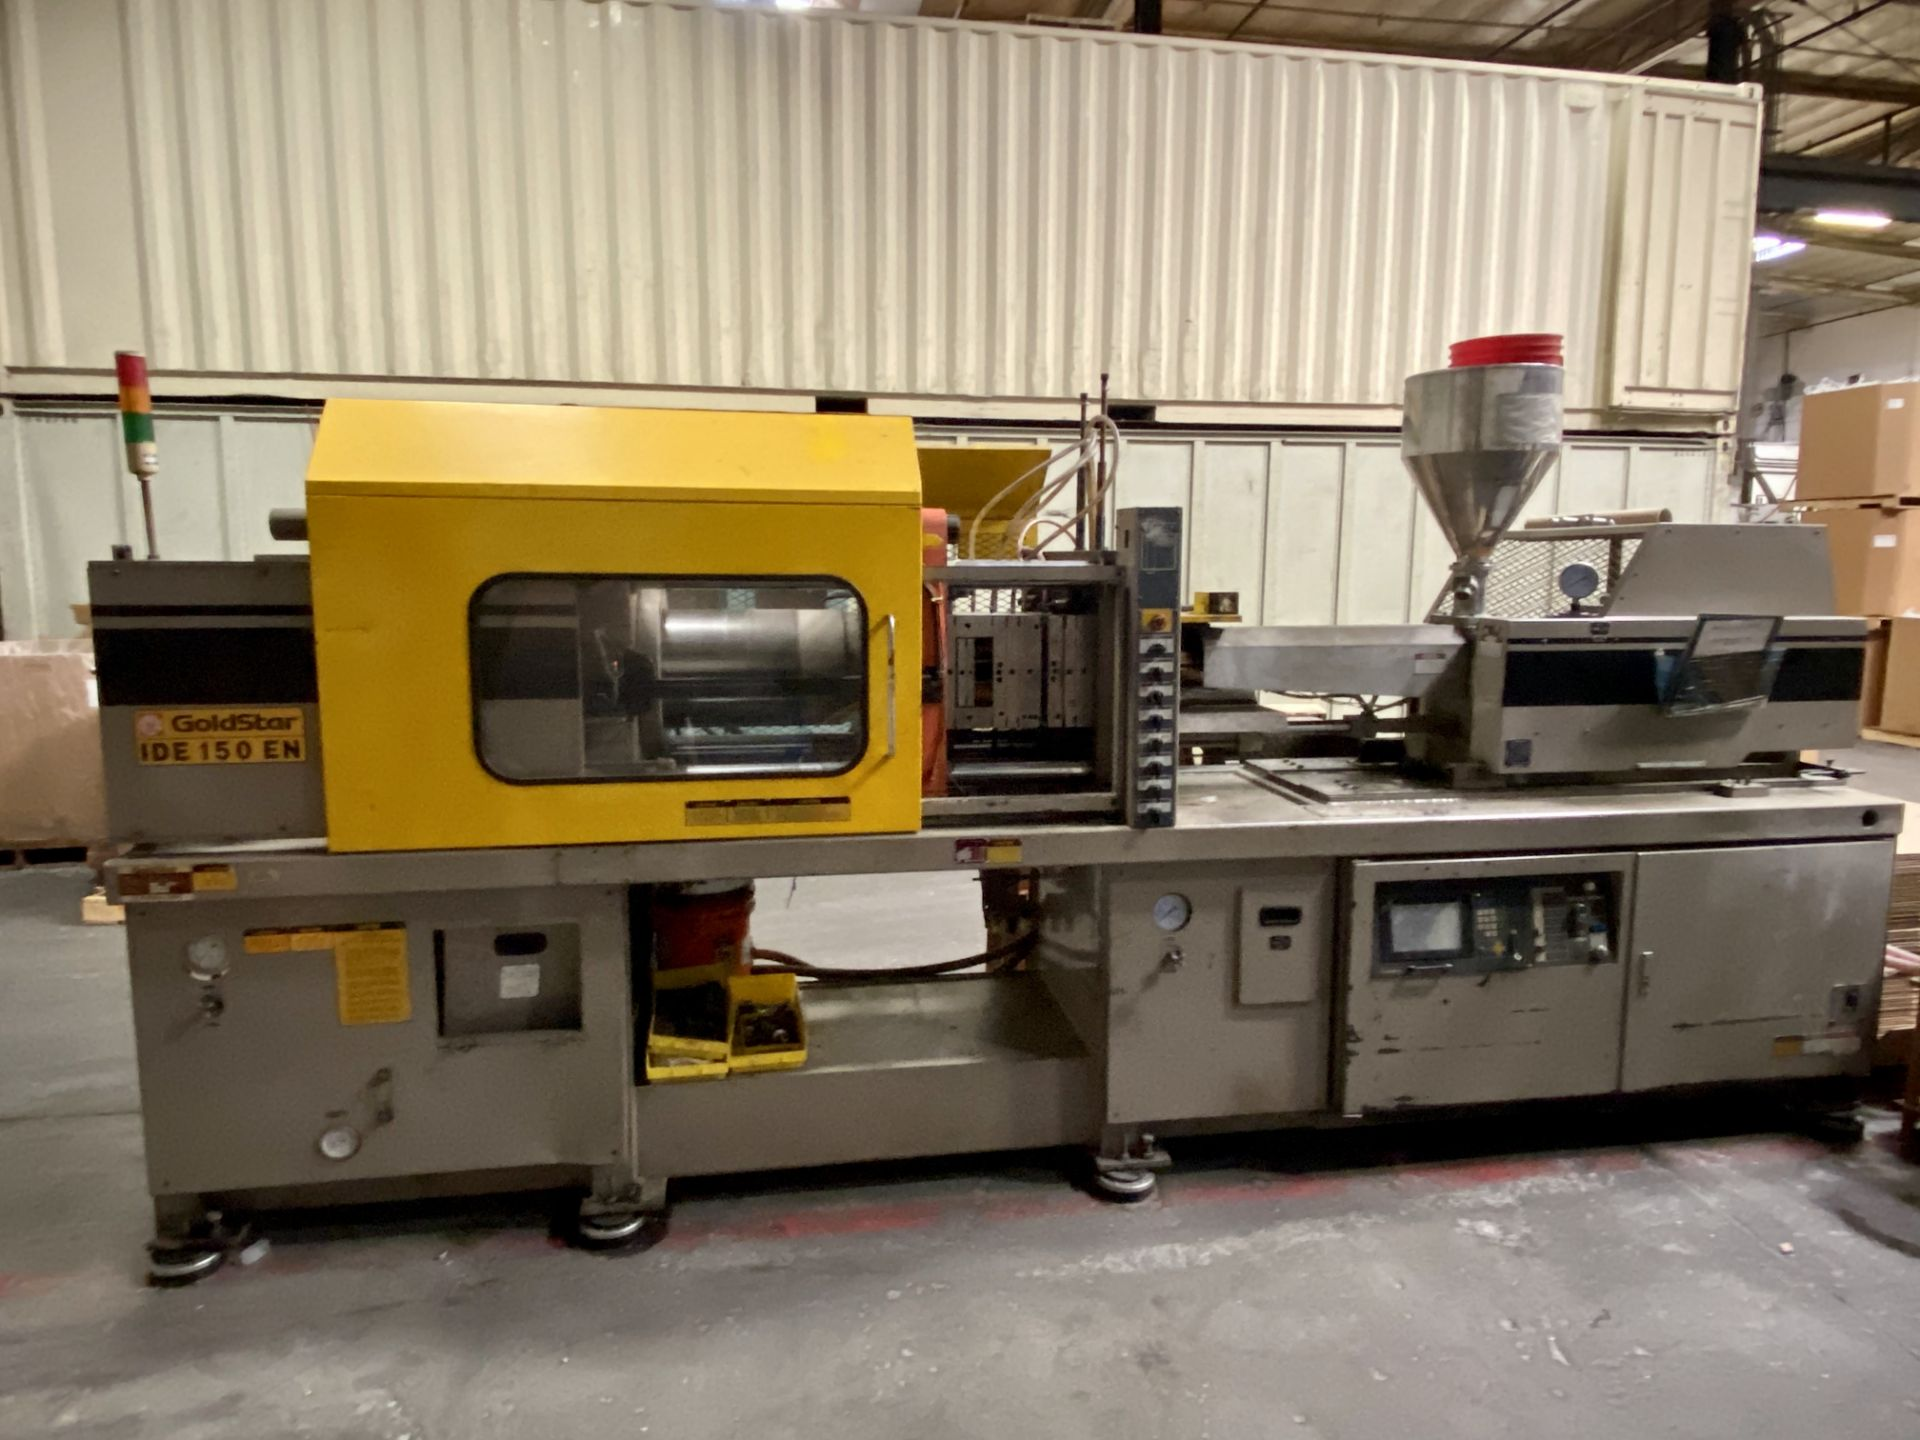 Lot 0A - GOLDSTAR INJECTION MOLDER, MODEL IDE150EN, 150 TON CAPACITY, S/N 1194015E3679